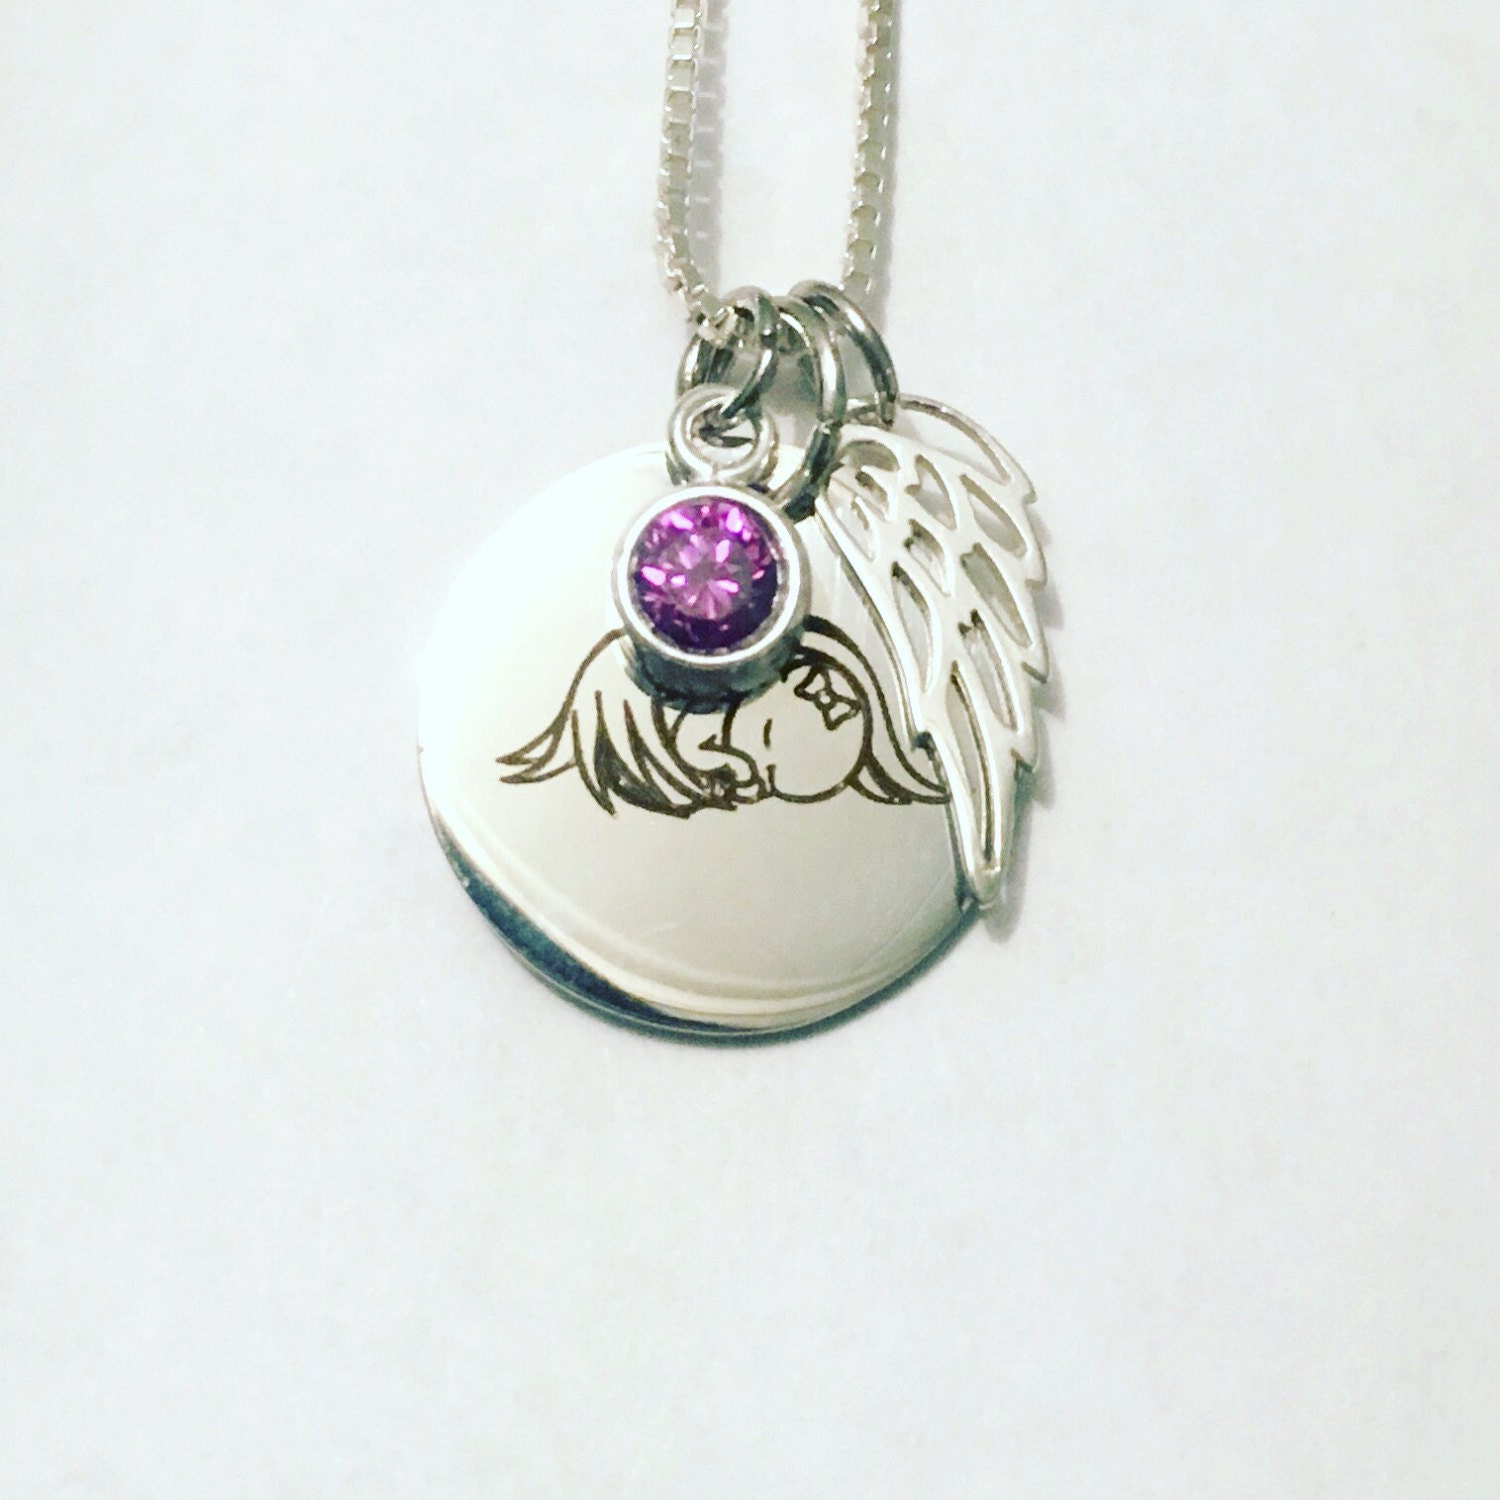 loss mom angel gift jewelry necklace miscarriage new remembrance charm com dp child amazon baby miscarrige